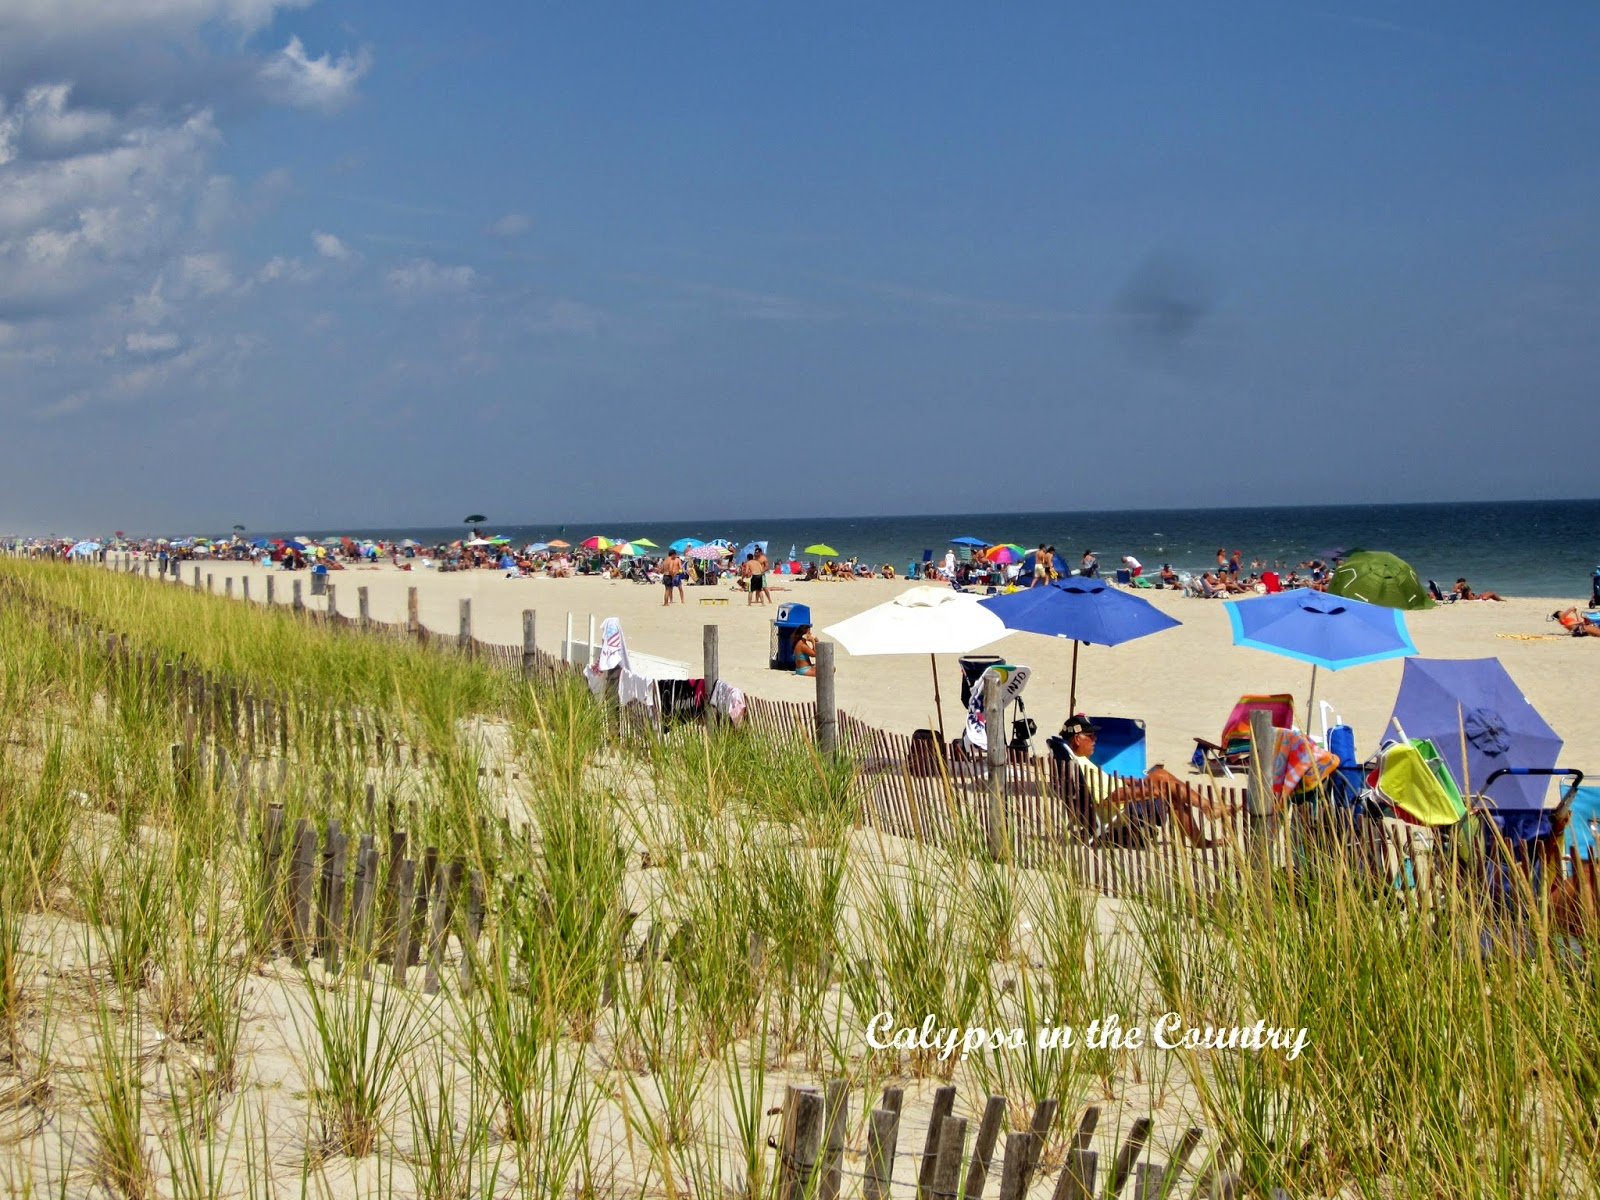 Labor Day Weekend at the Jersey Shore